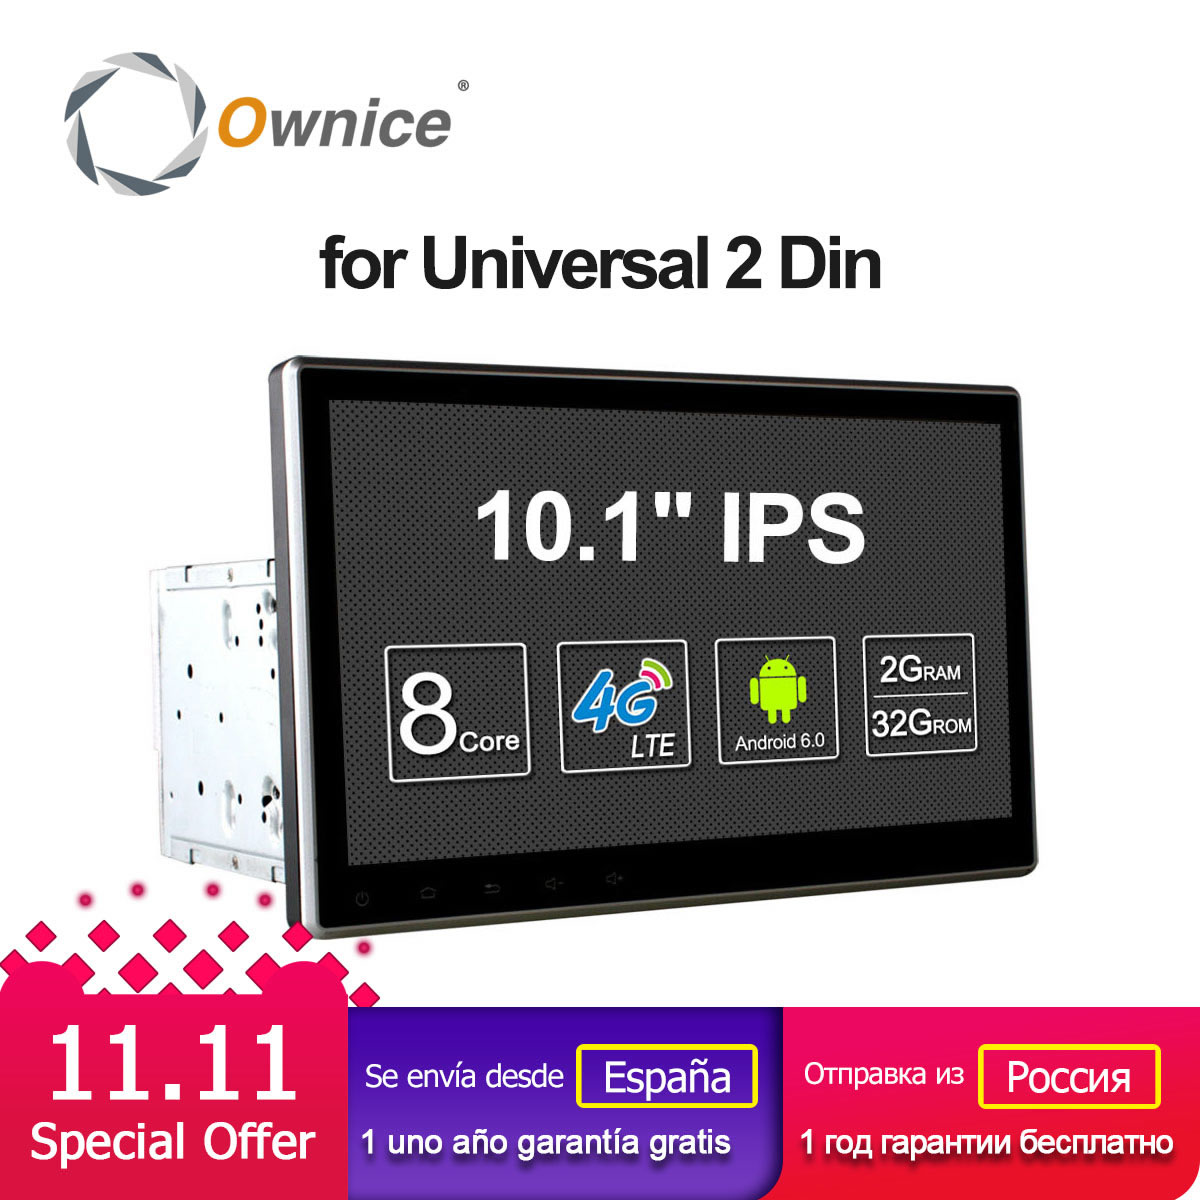 Ownice C500 2Din 10.1 pollice HD android 6.0 octa core Universal car radio stereo Lettore DVD di Navigazione GPS TPMS DAB 4g LTE Carplay